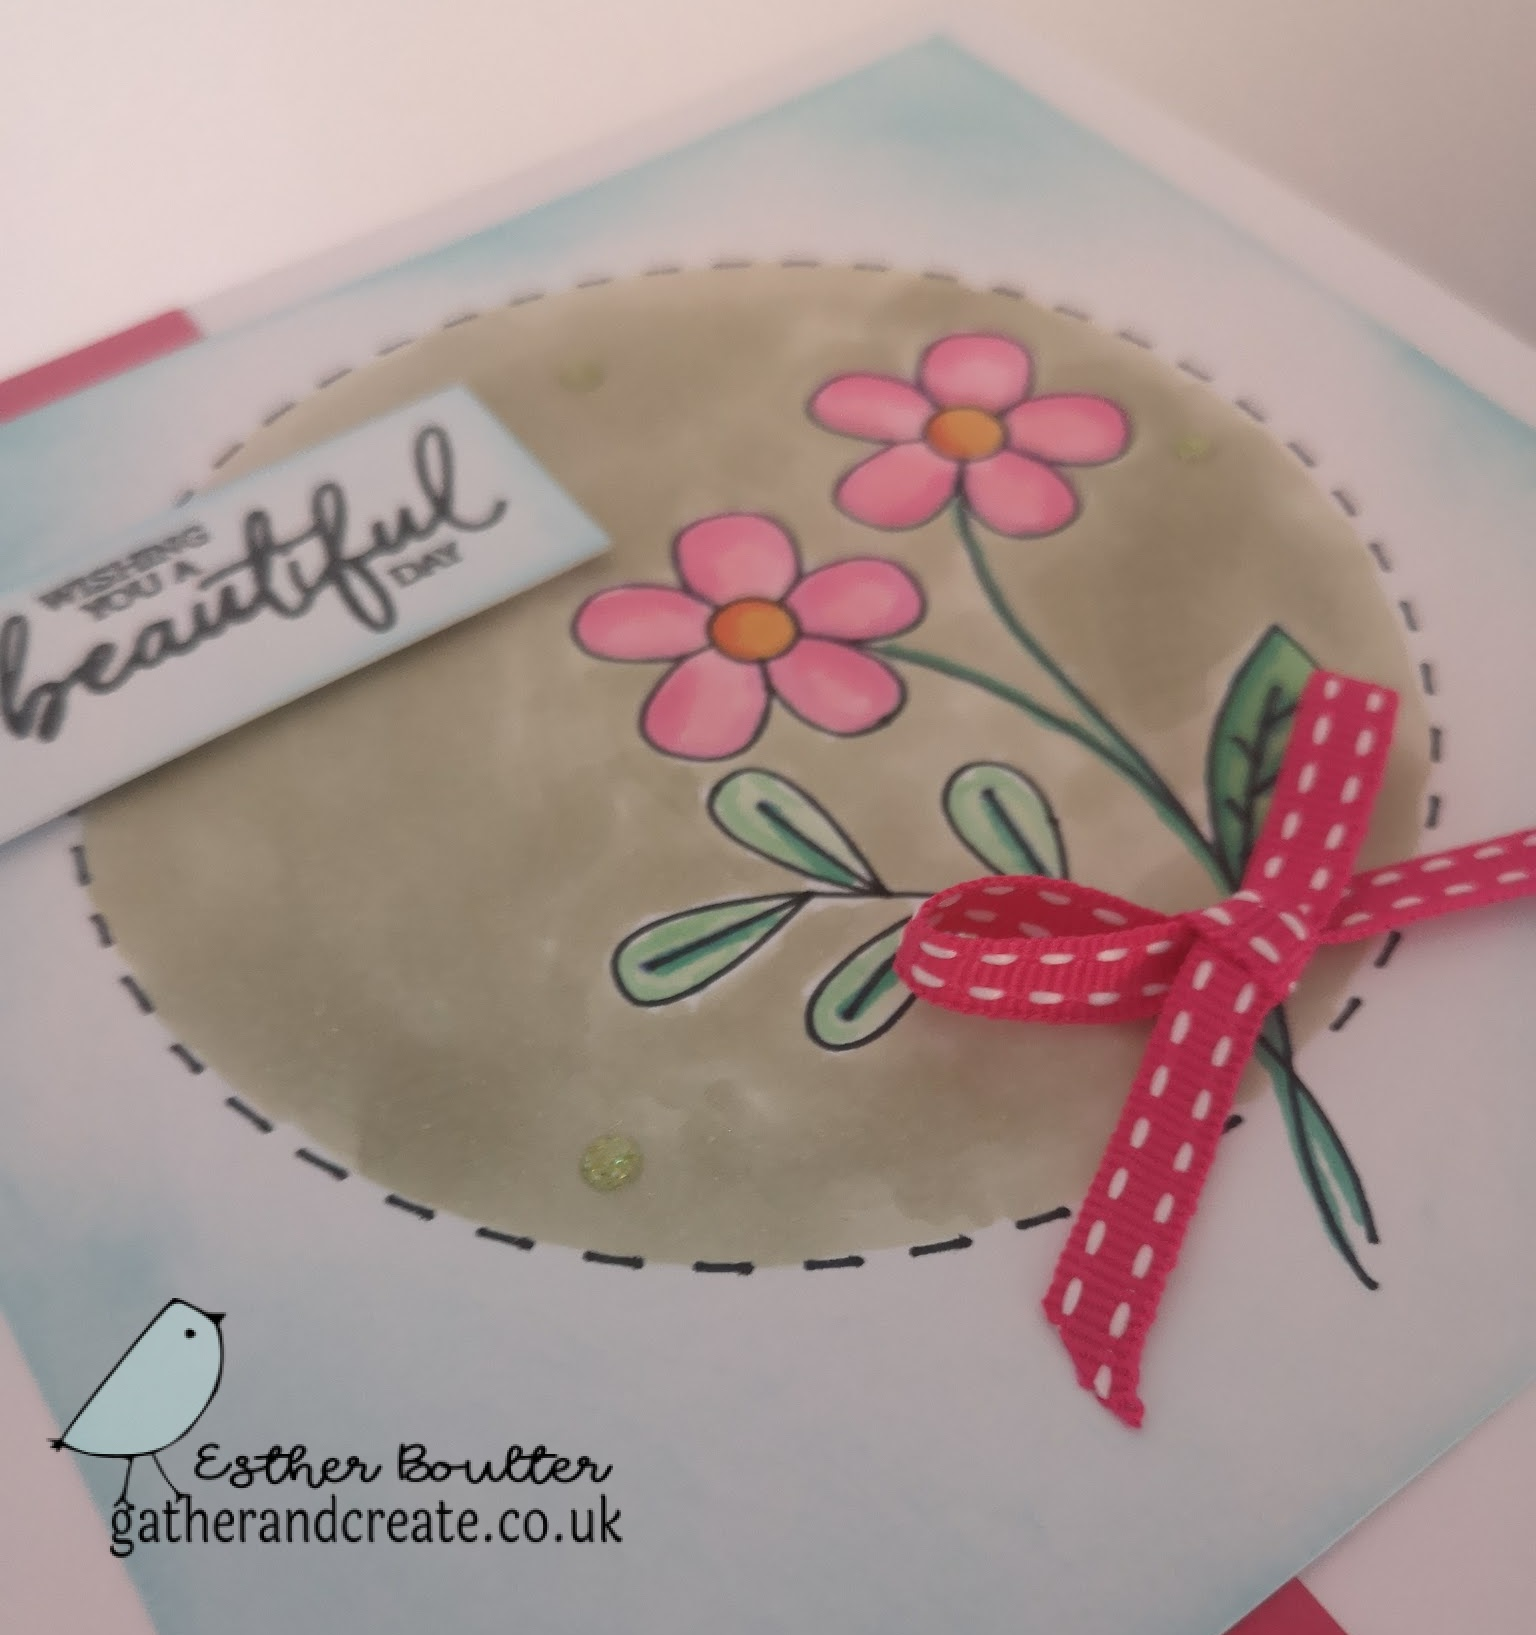 DRAWING WITH THE CRICUT MAKER AND COLOURING WITH NUVO PENS